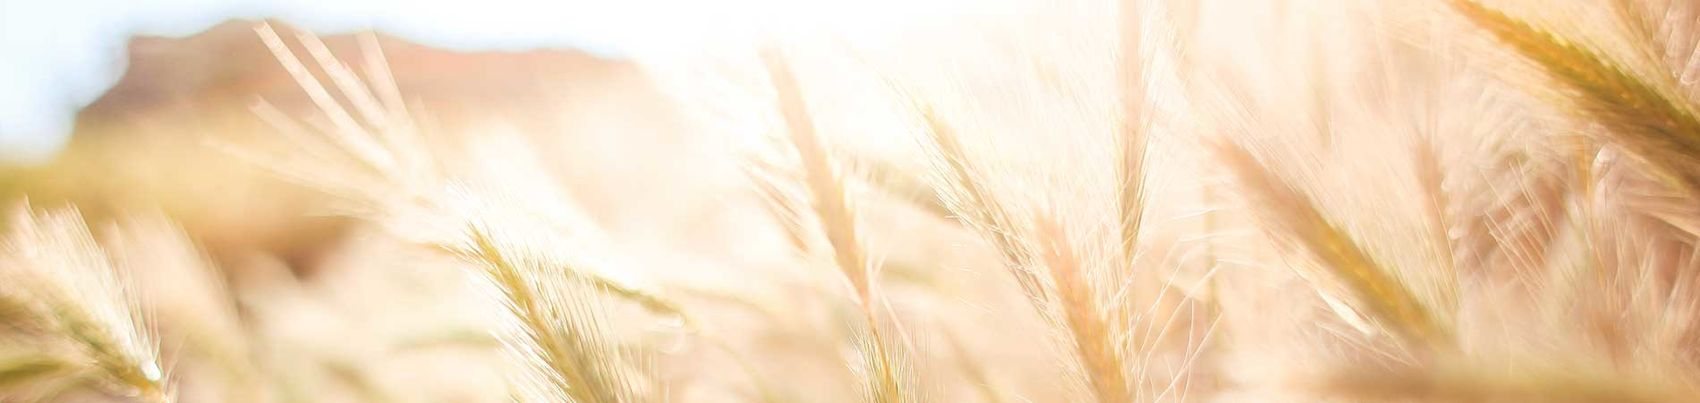 grain field with sunshine